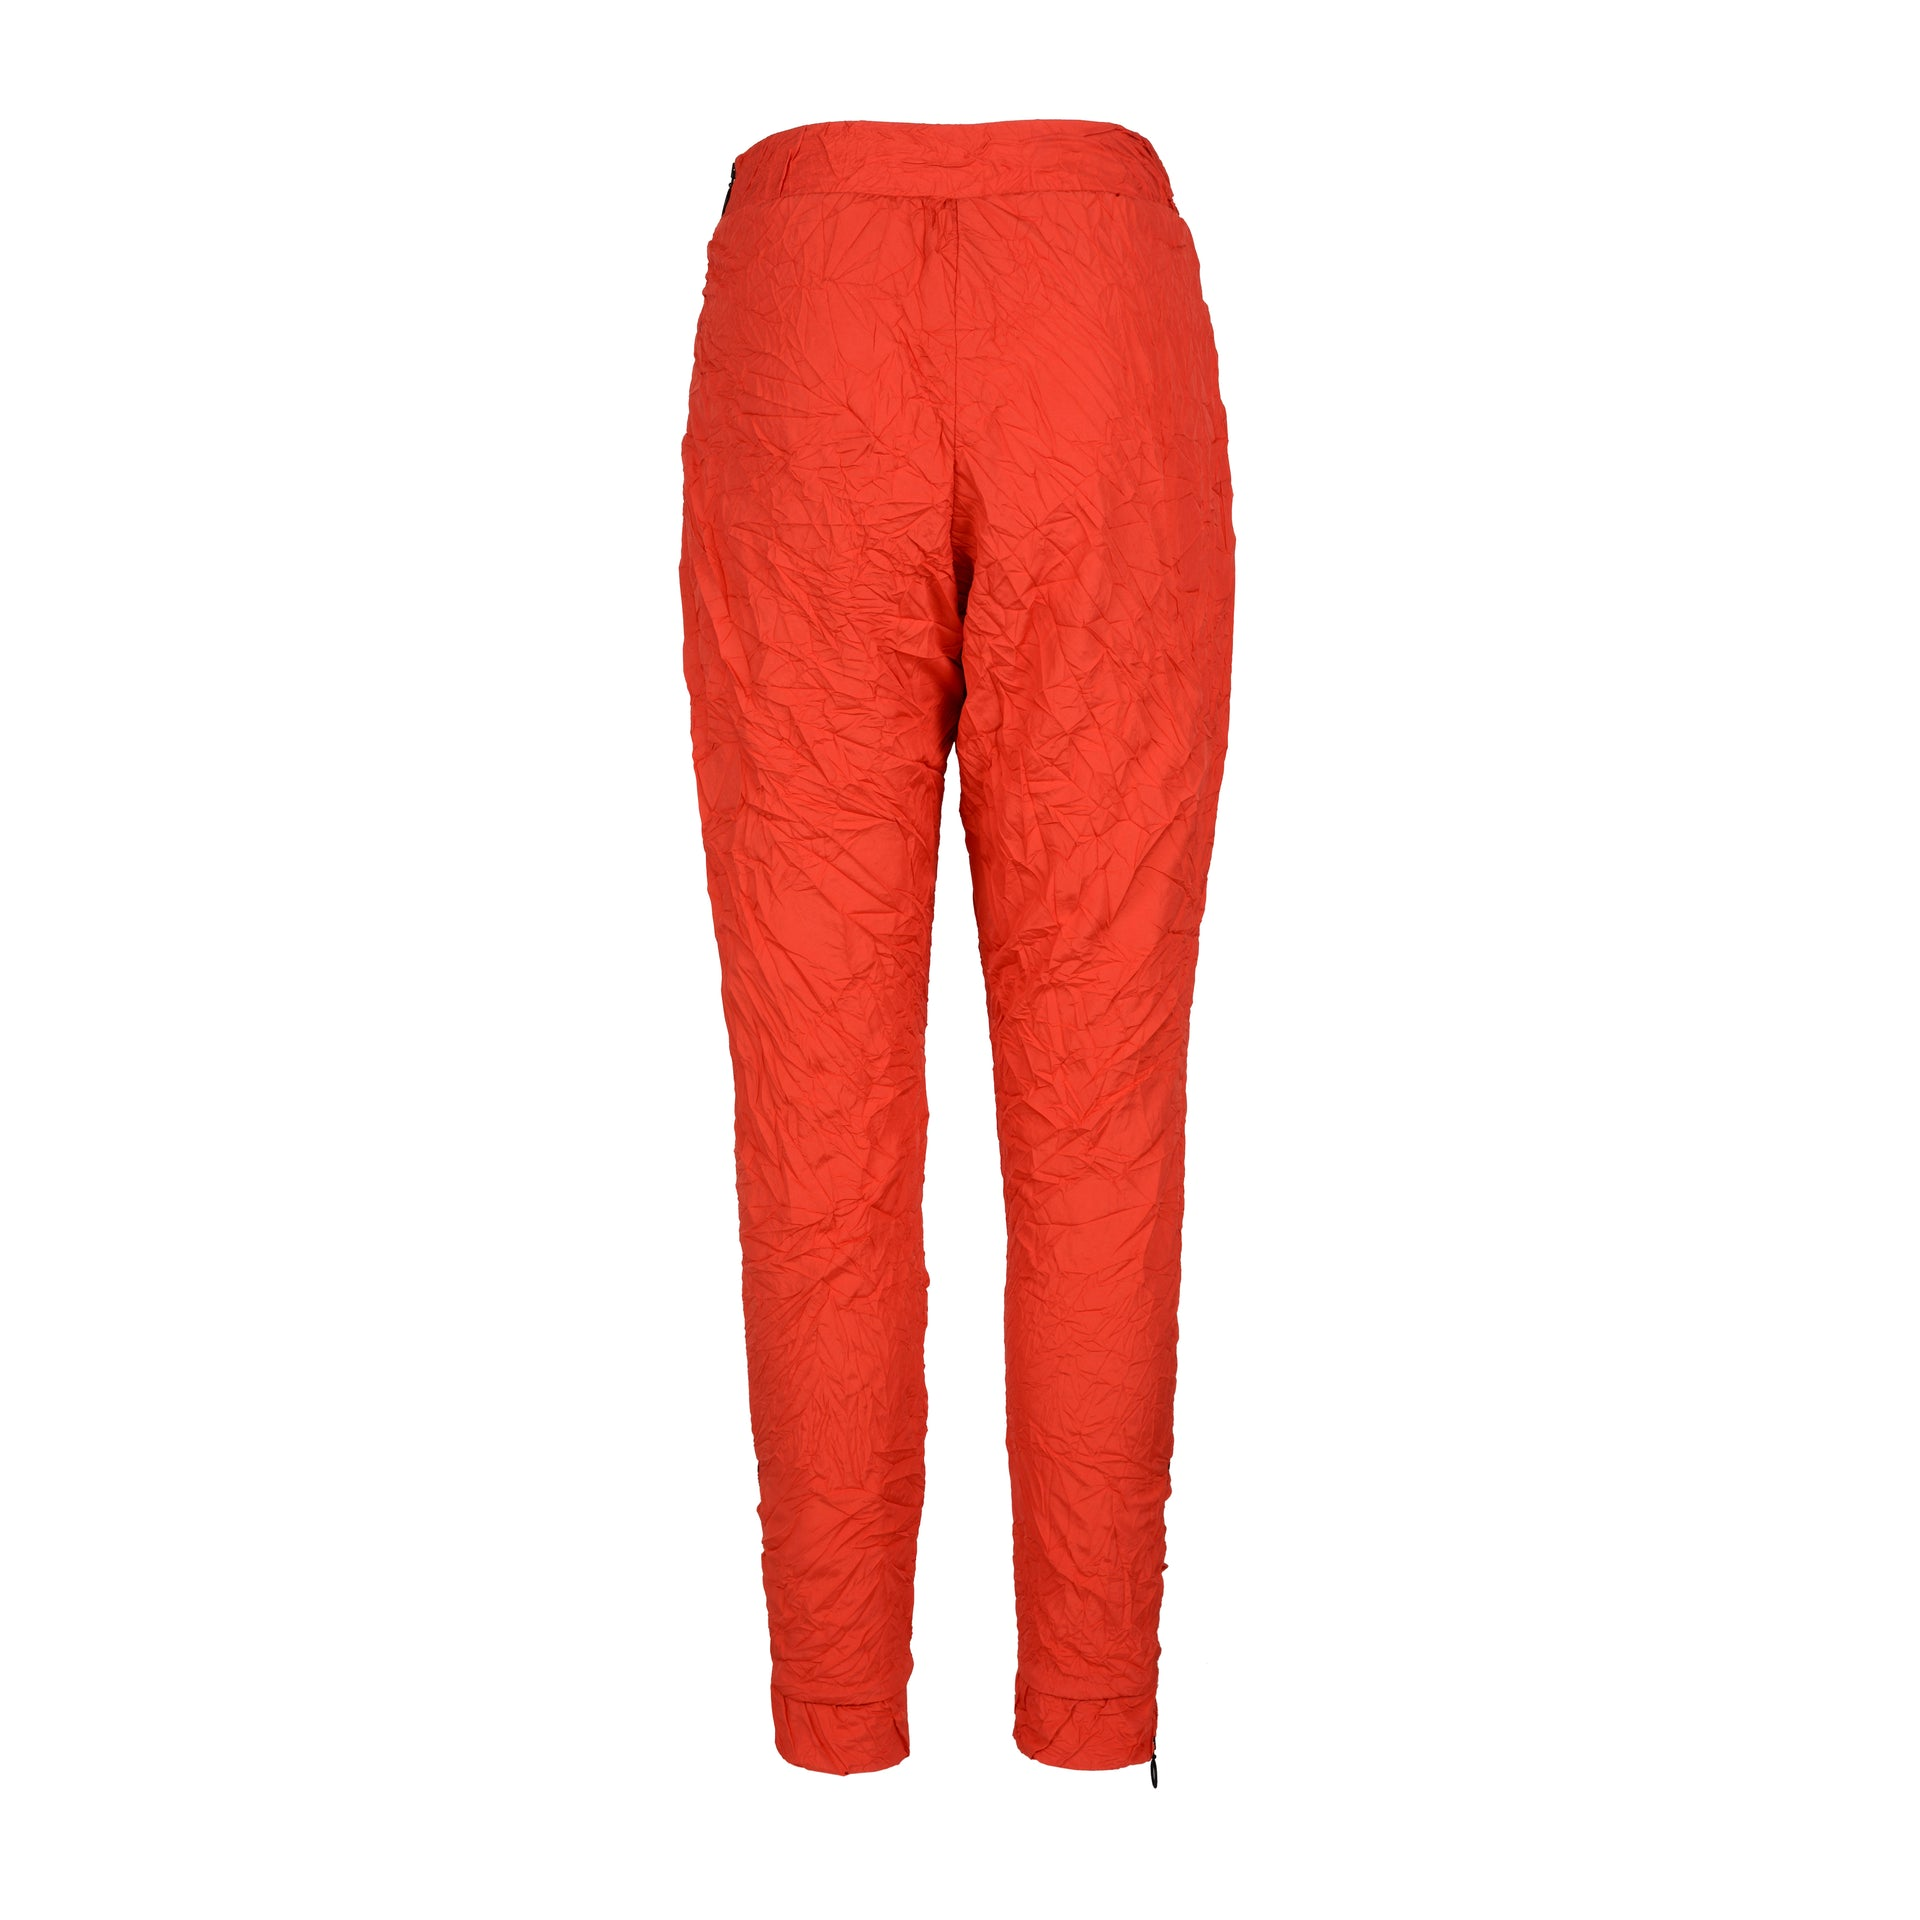 VALIANT POPPY TROUSERS